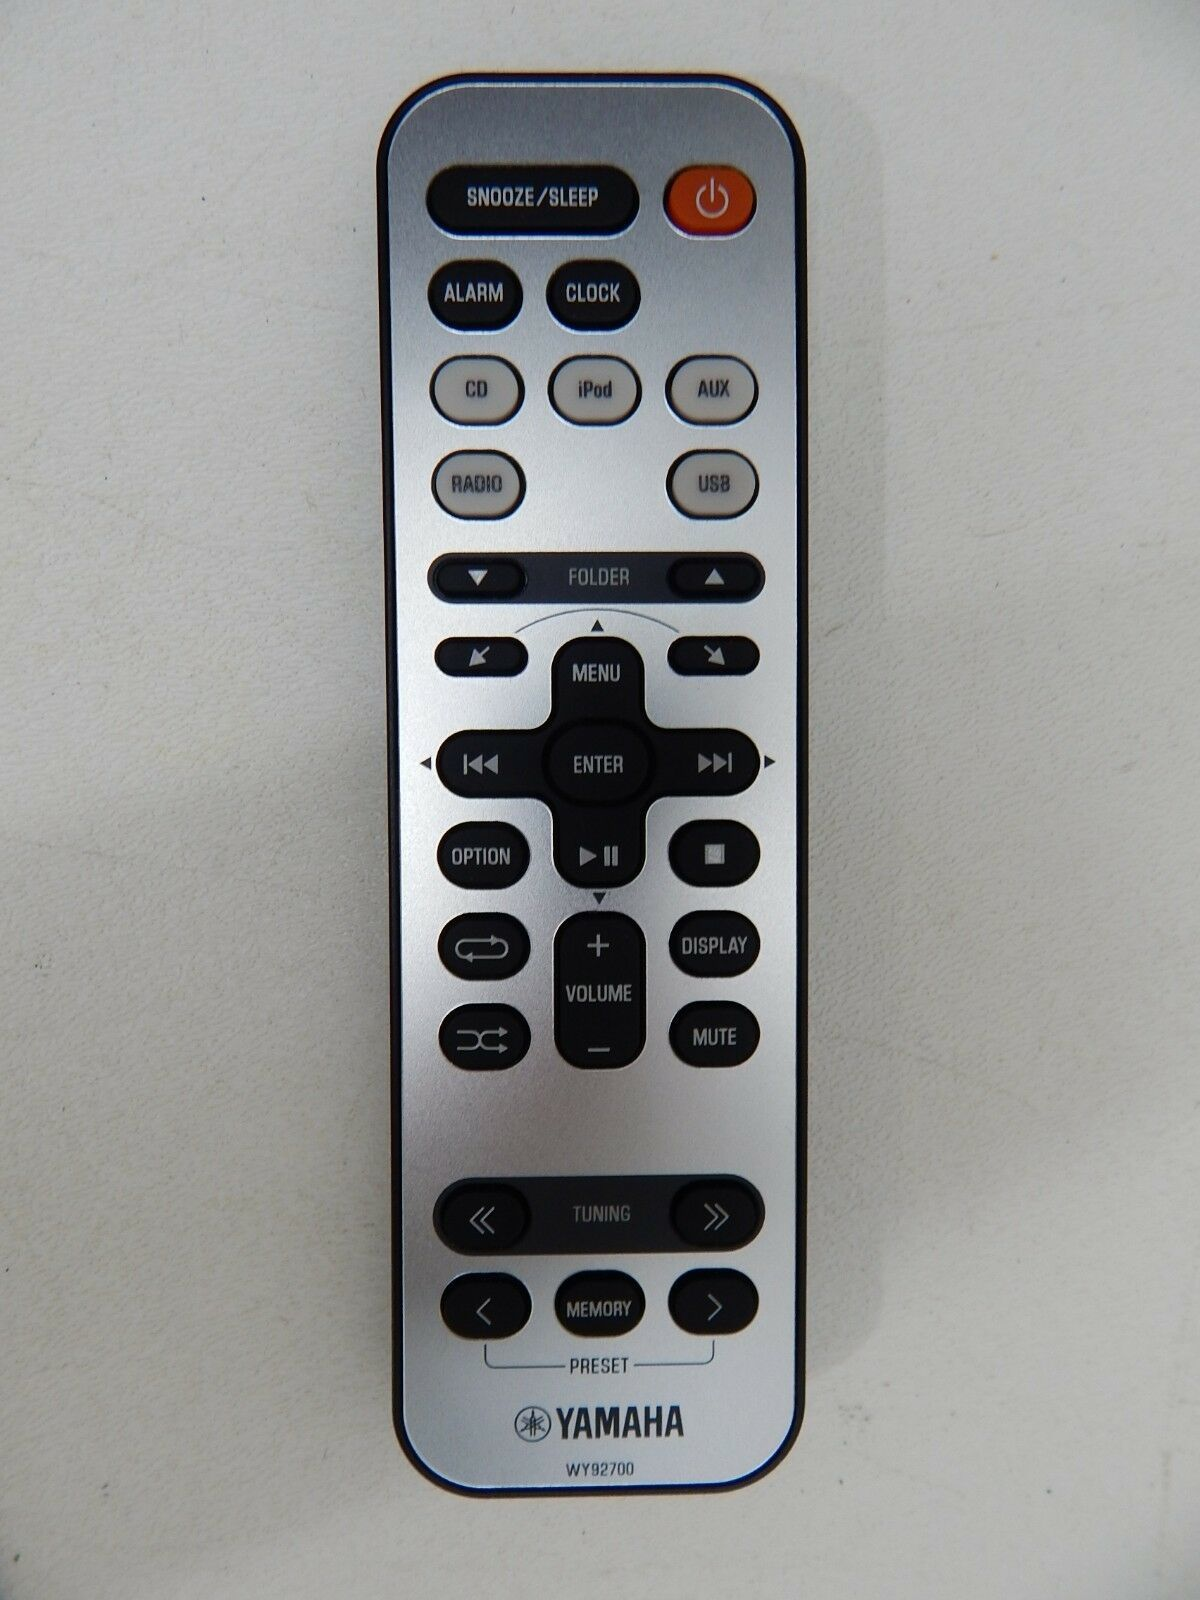 Yamaha WY92700 iPod Stereo Dock Remote Control for TSX-112, TSX-112ML (WY927000)